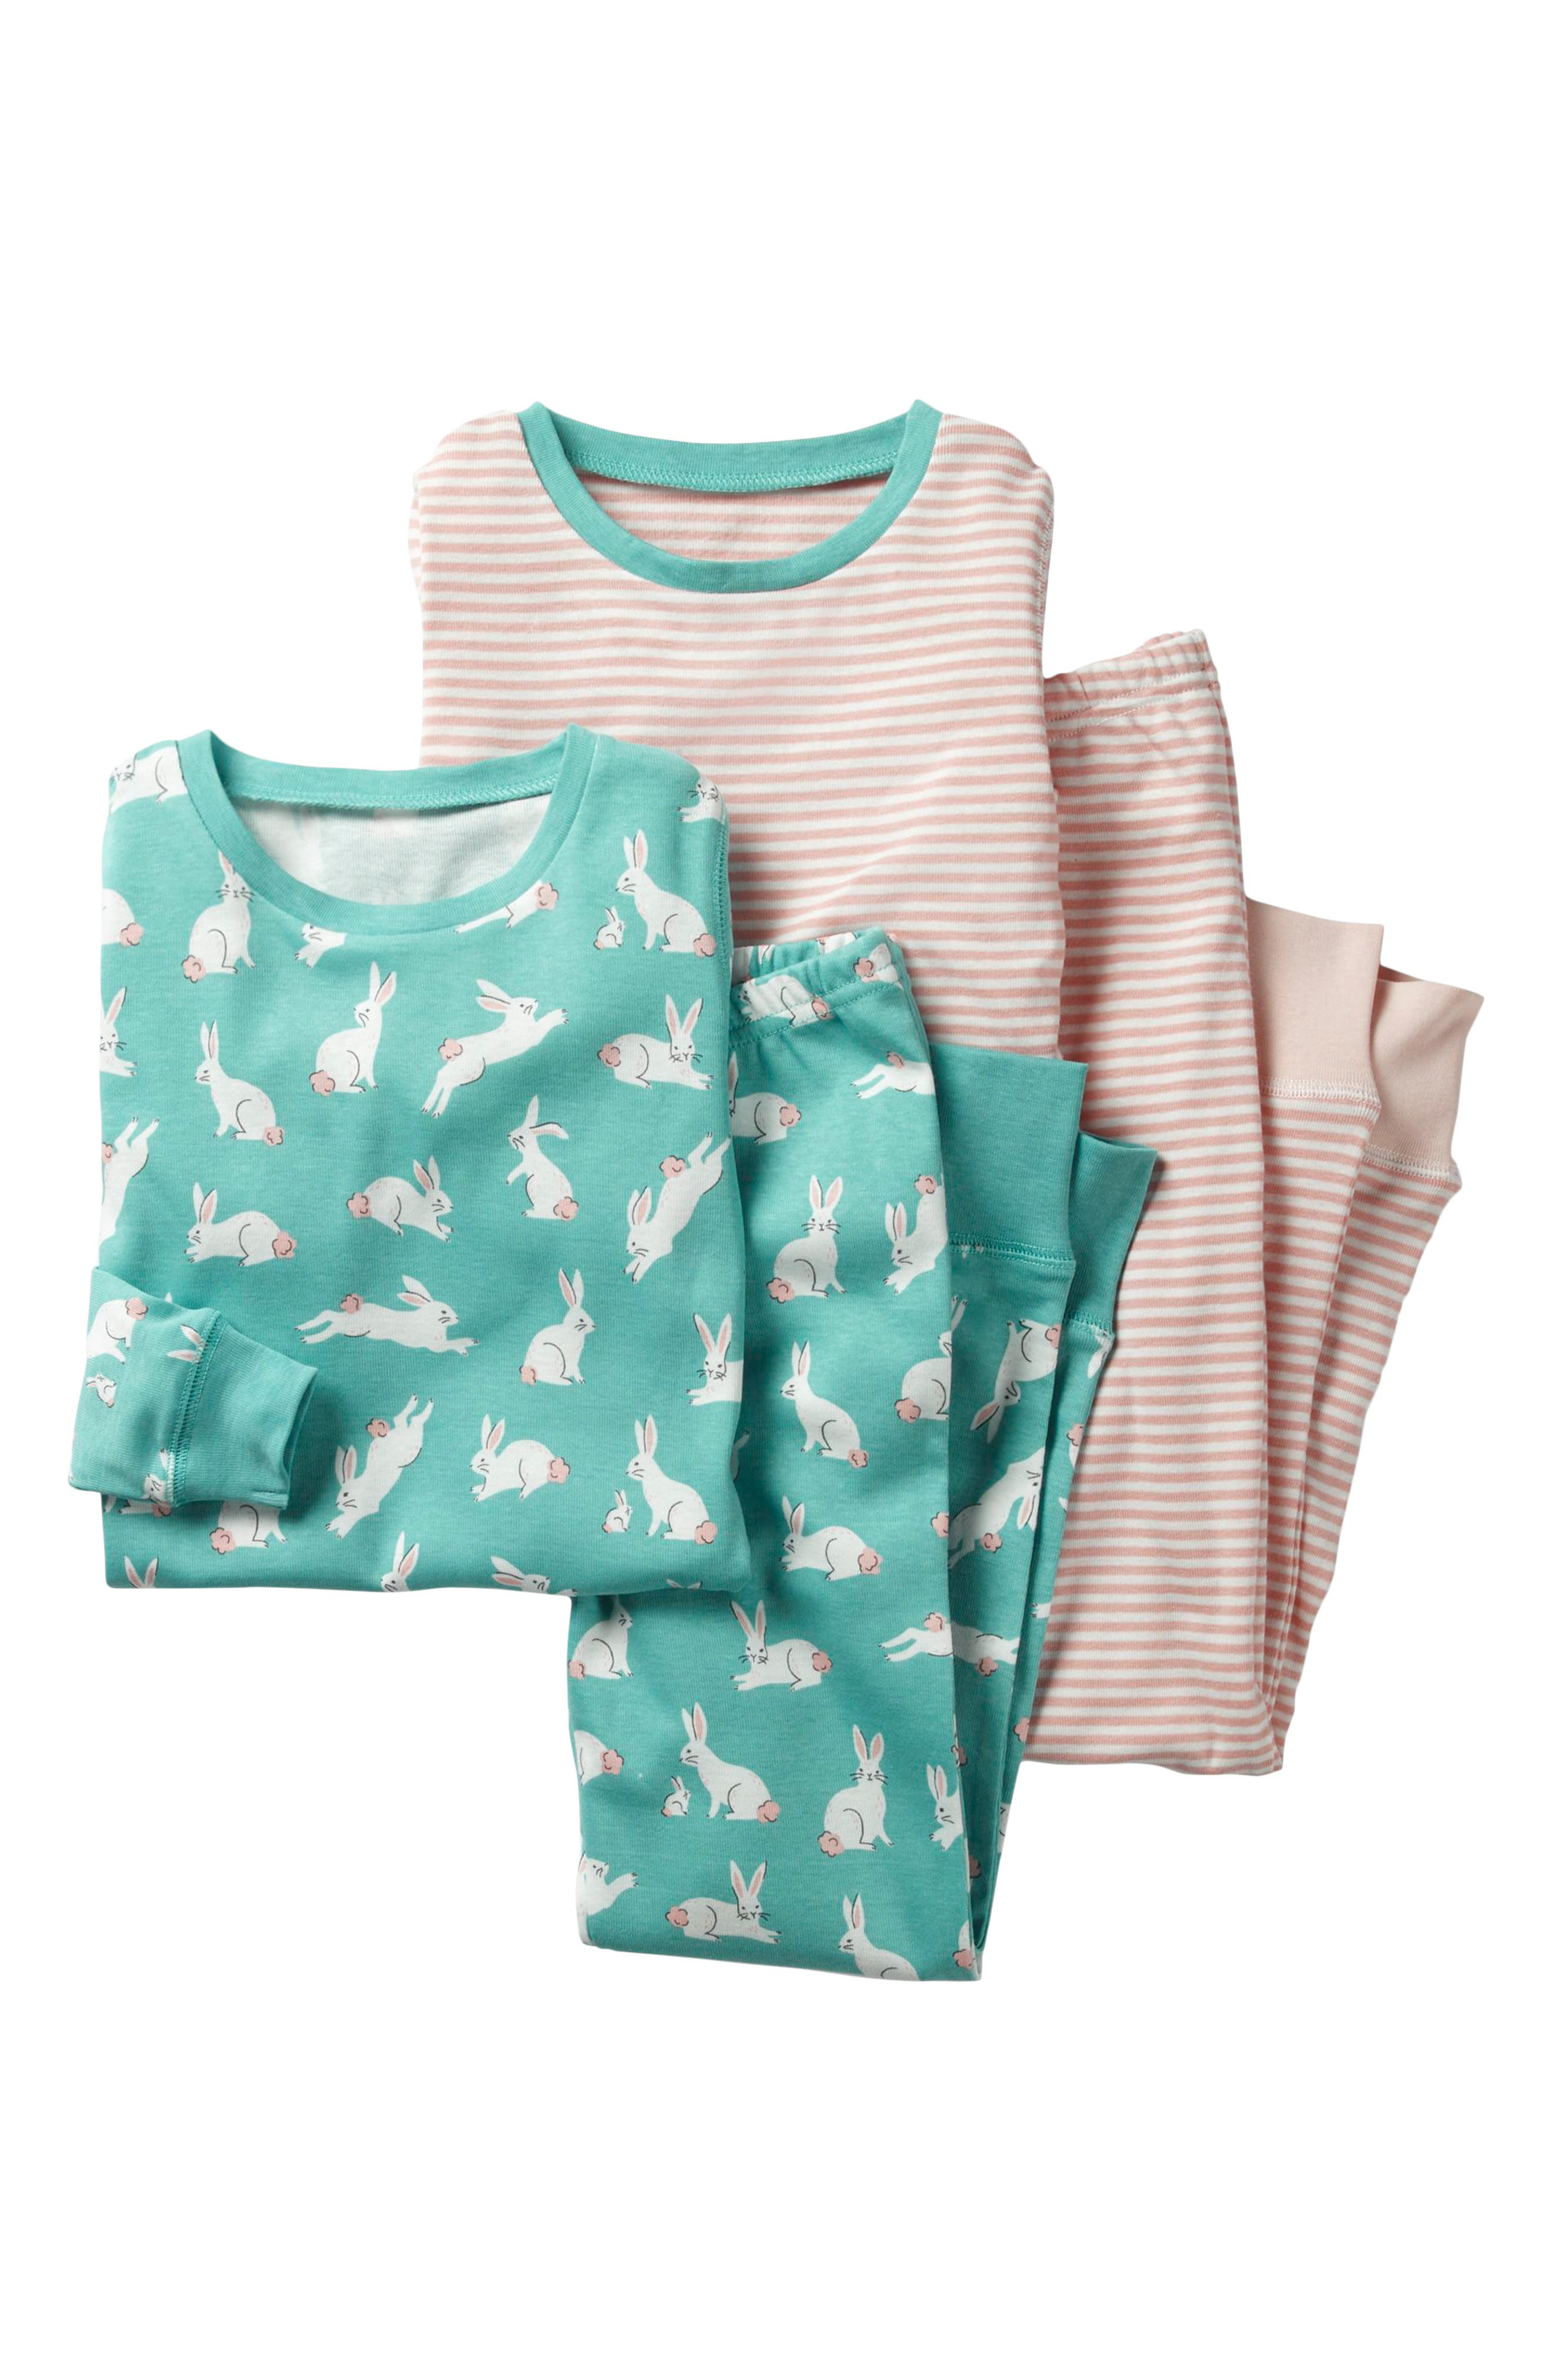 Two-Pack Fitted Two-Piece Pajamas,                             Main thumbnail 1, color,                             Green Bunnies/ Provence Pink